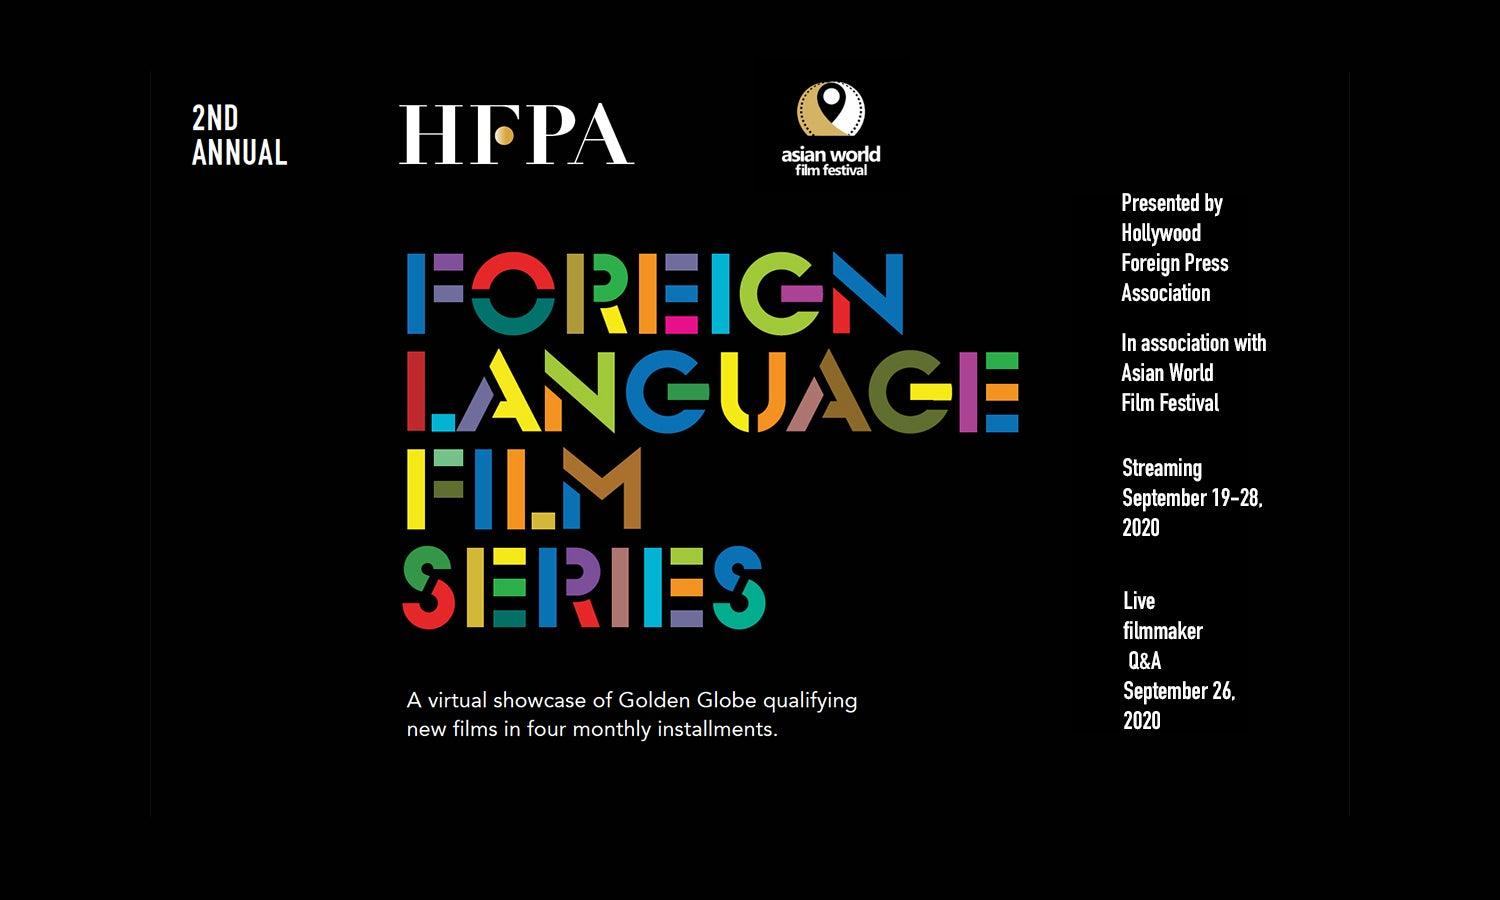 2nd Annual Foreign Language Film Series